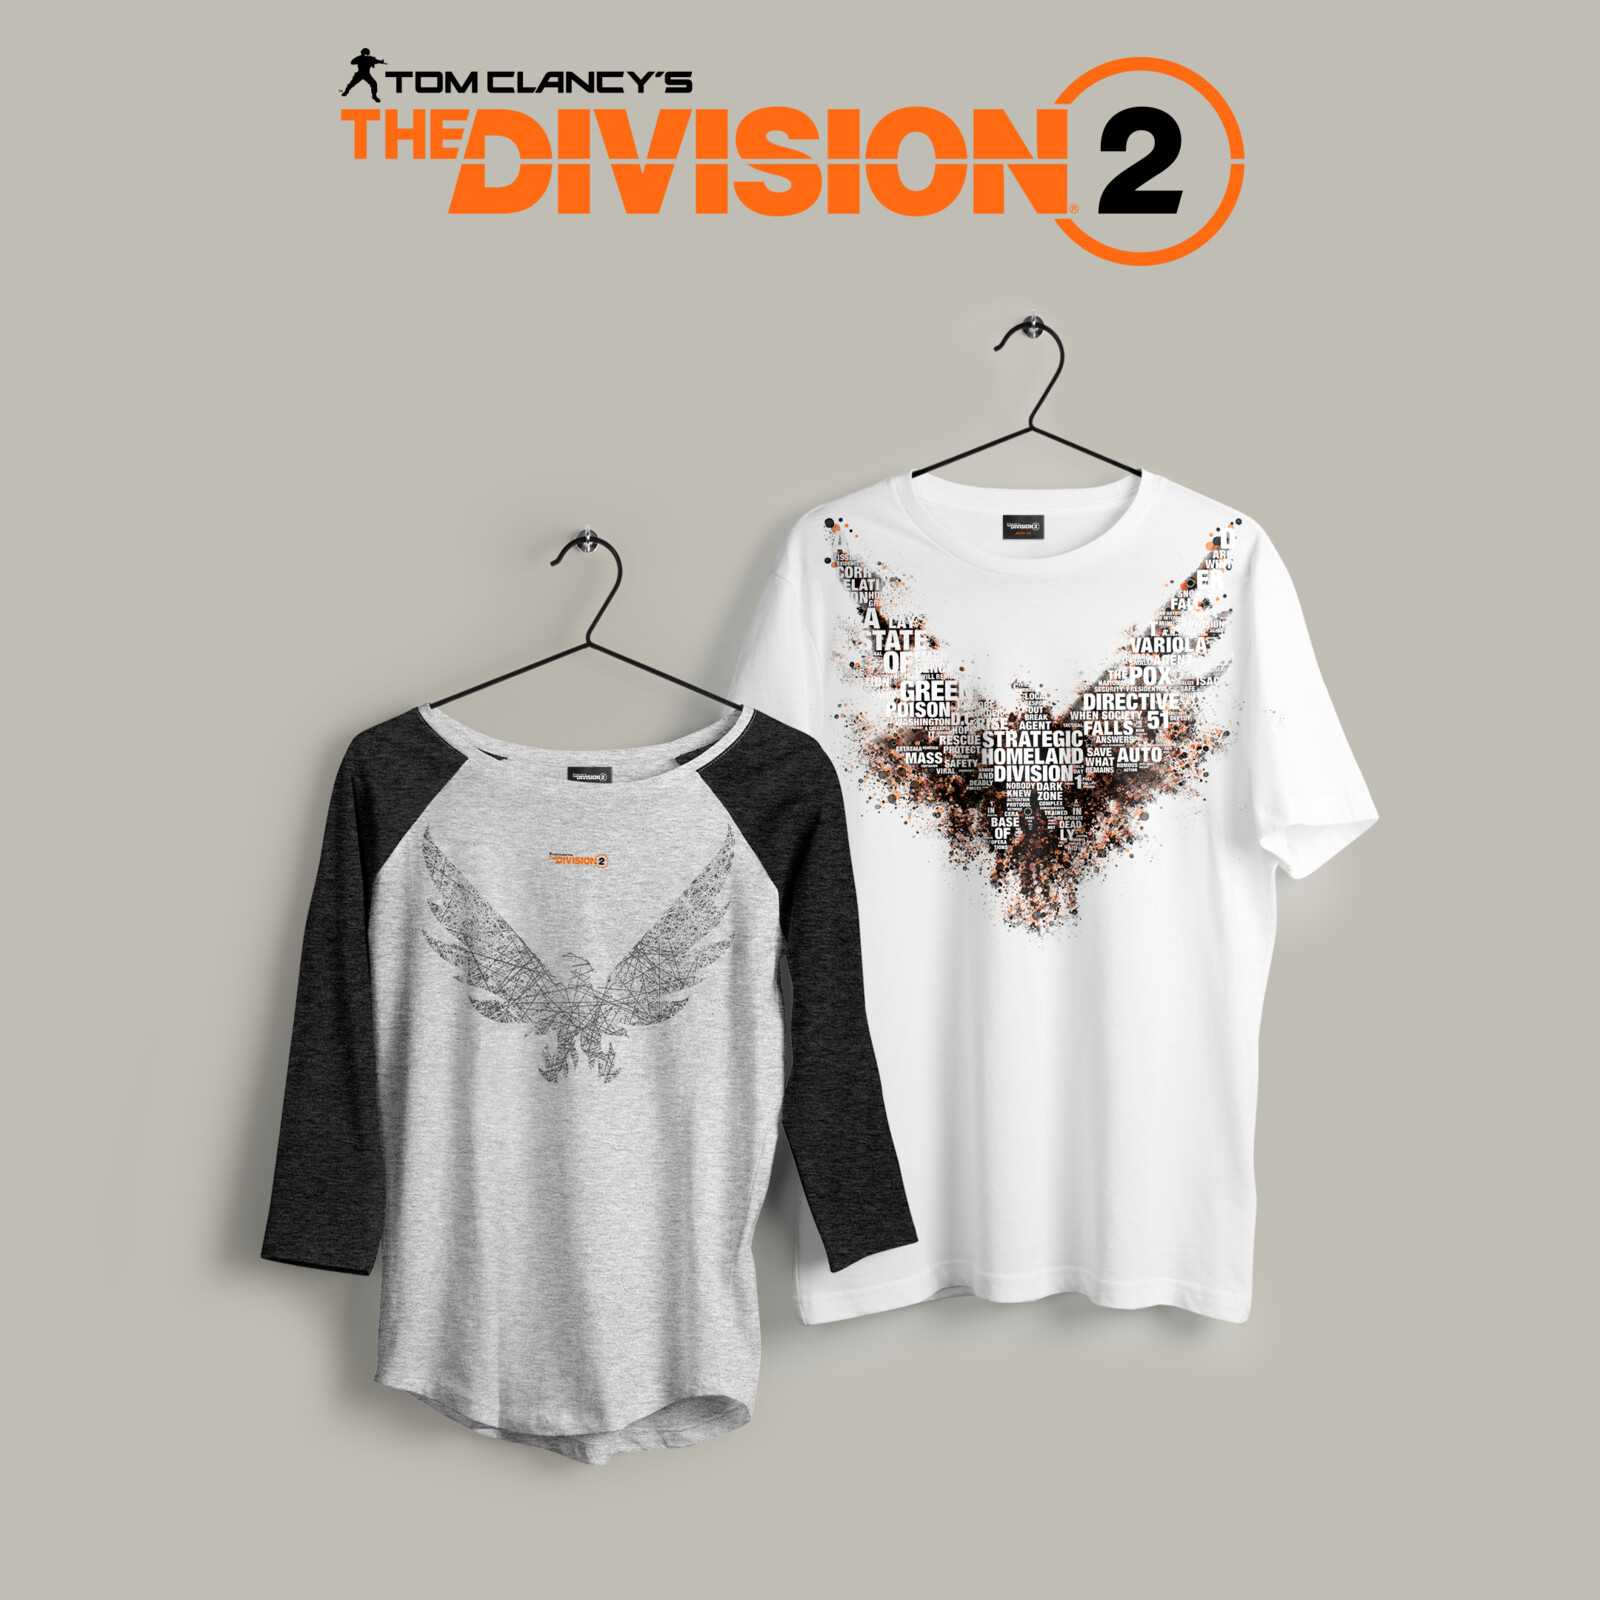 Massive Entertainment - The Division 2 - Apparel concepts, Illustration and Lookbook layout